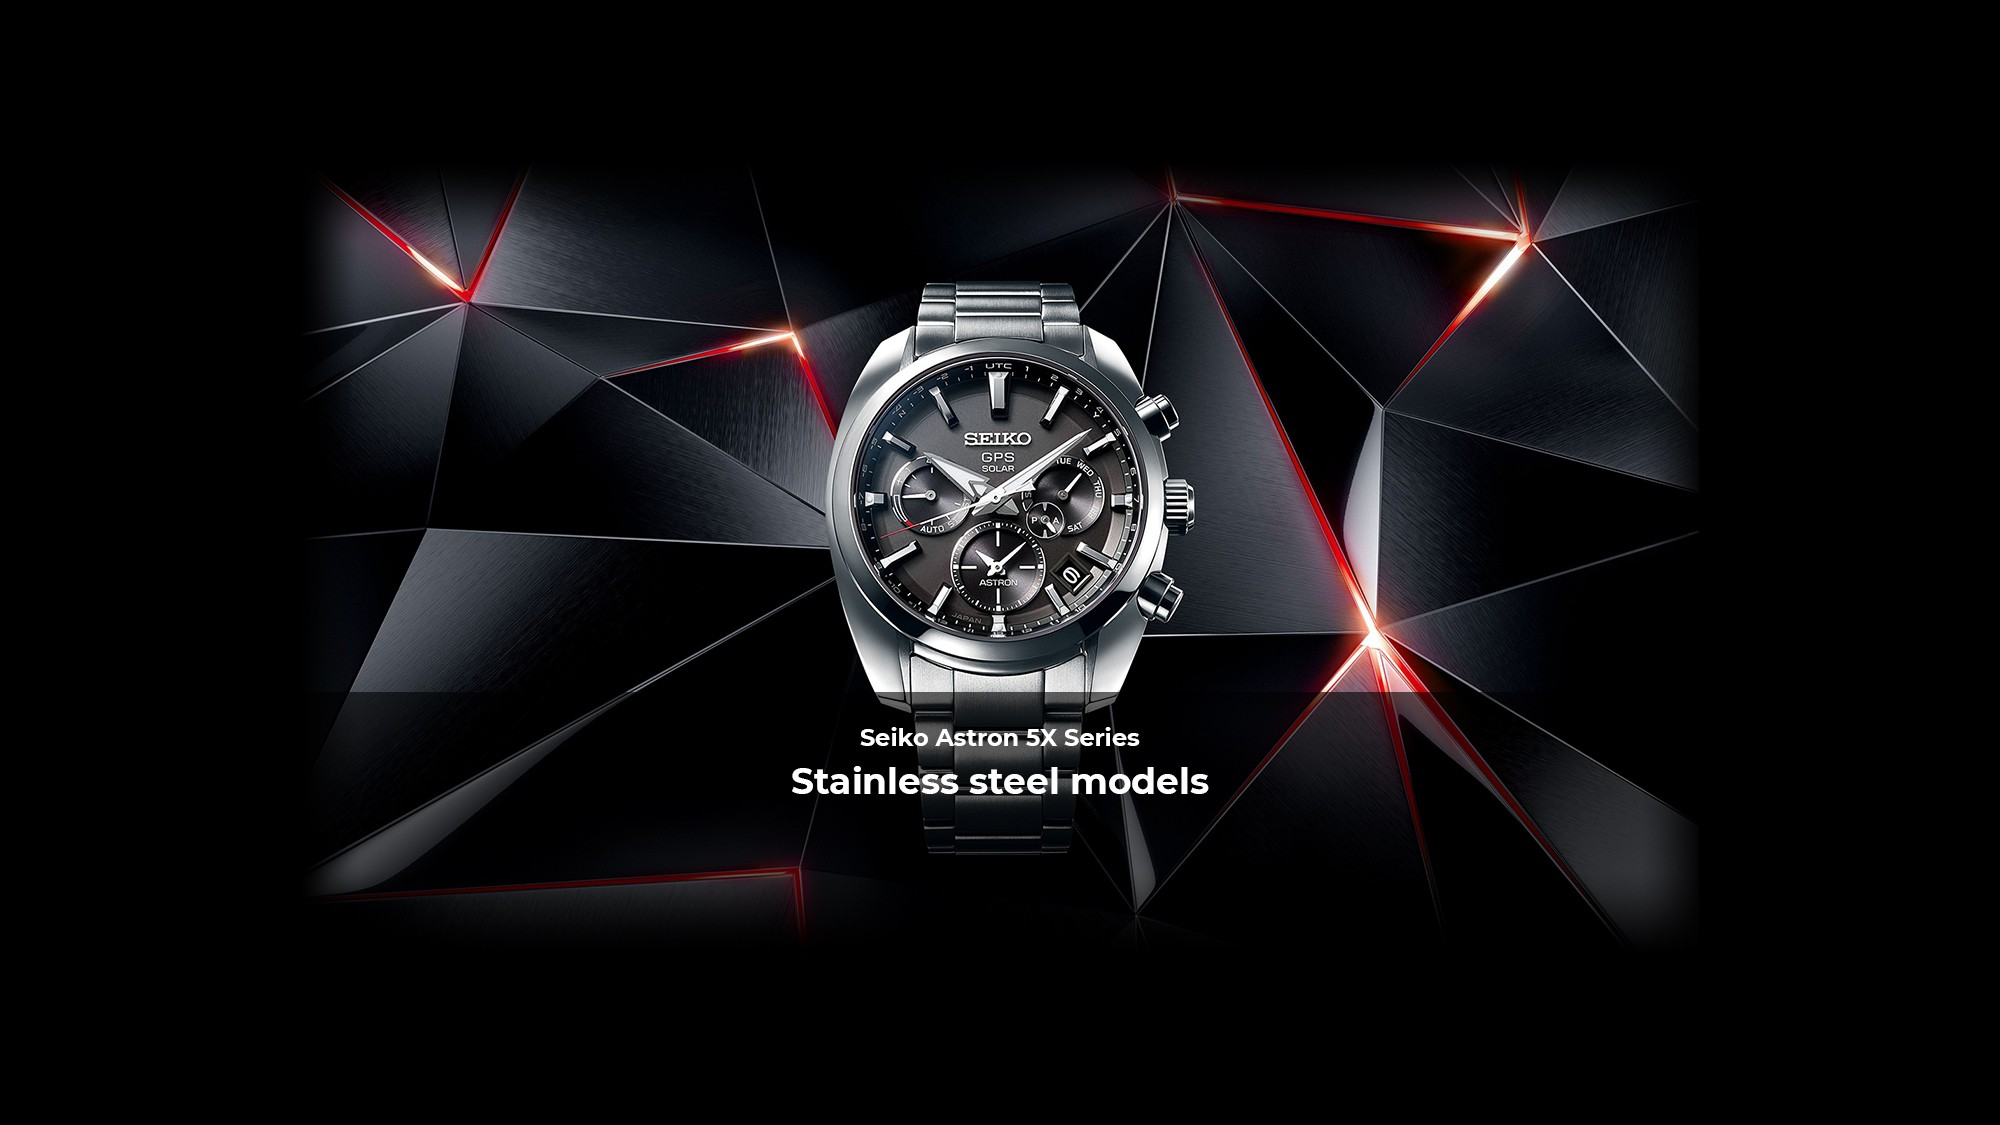 astron-main-visual 5x stainless steel